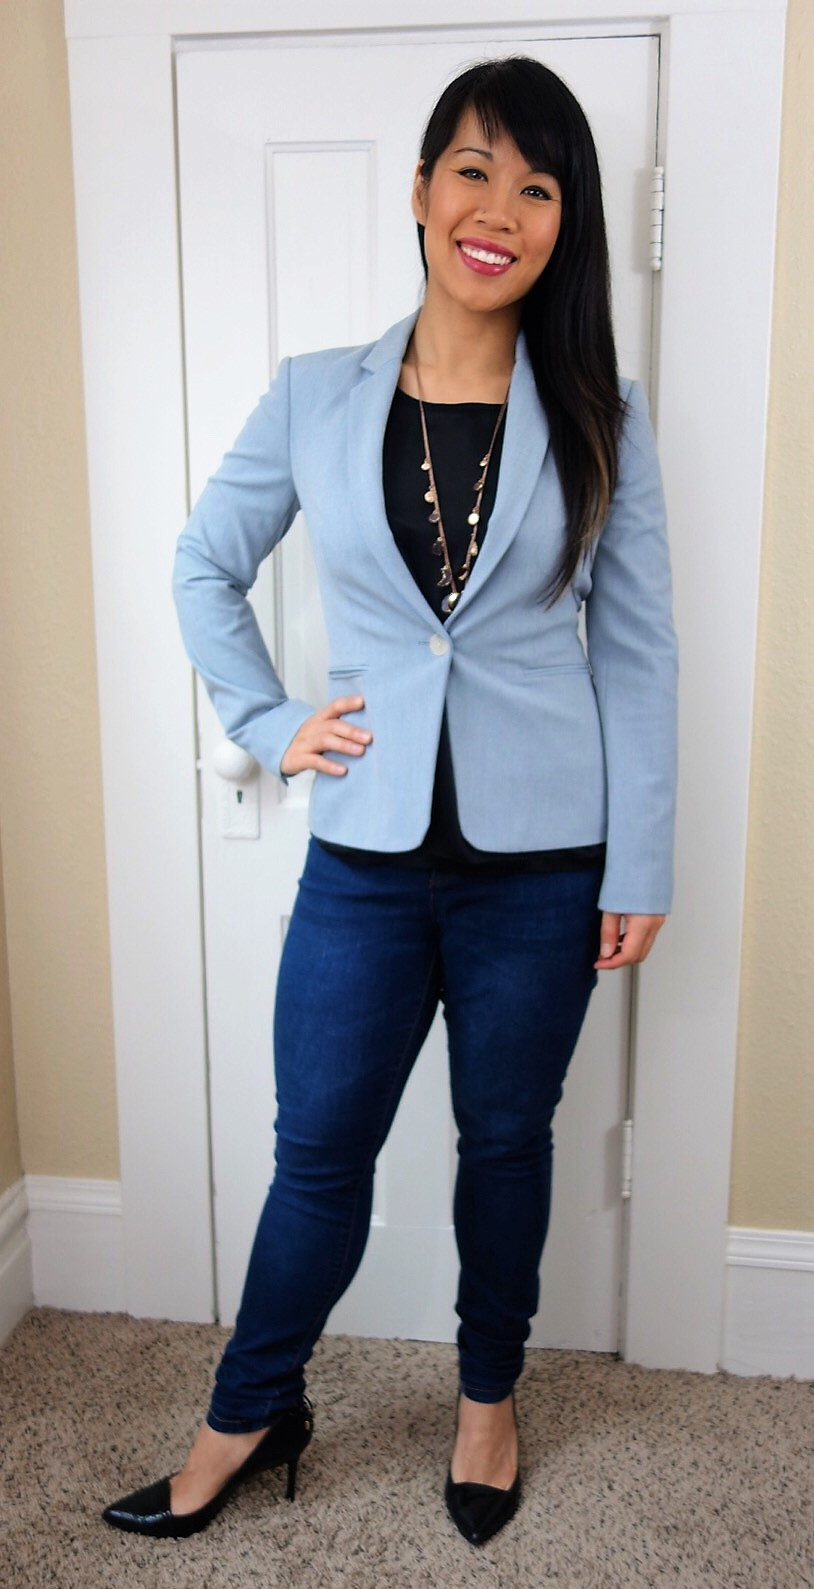 Kat wearing a standard power blazer outfit